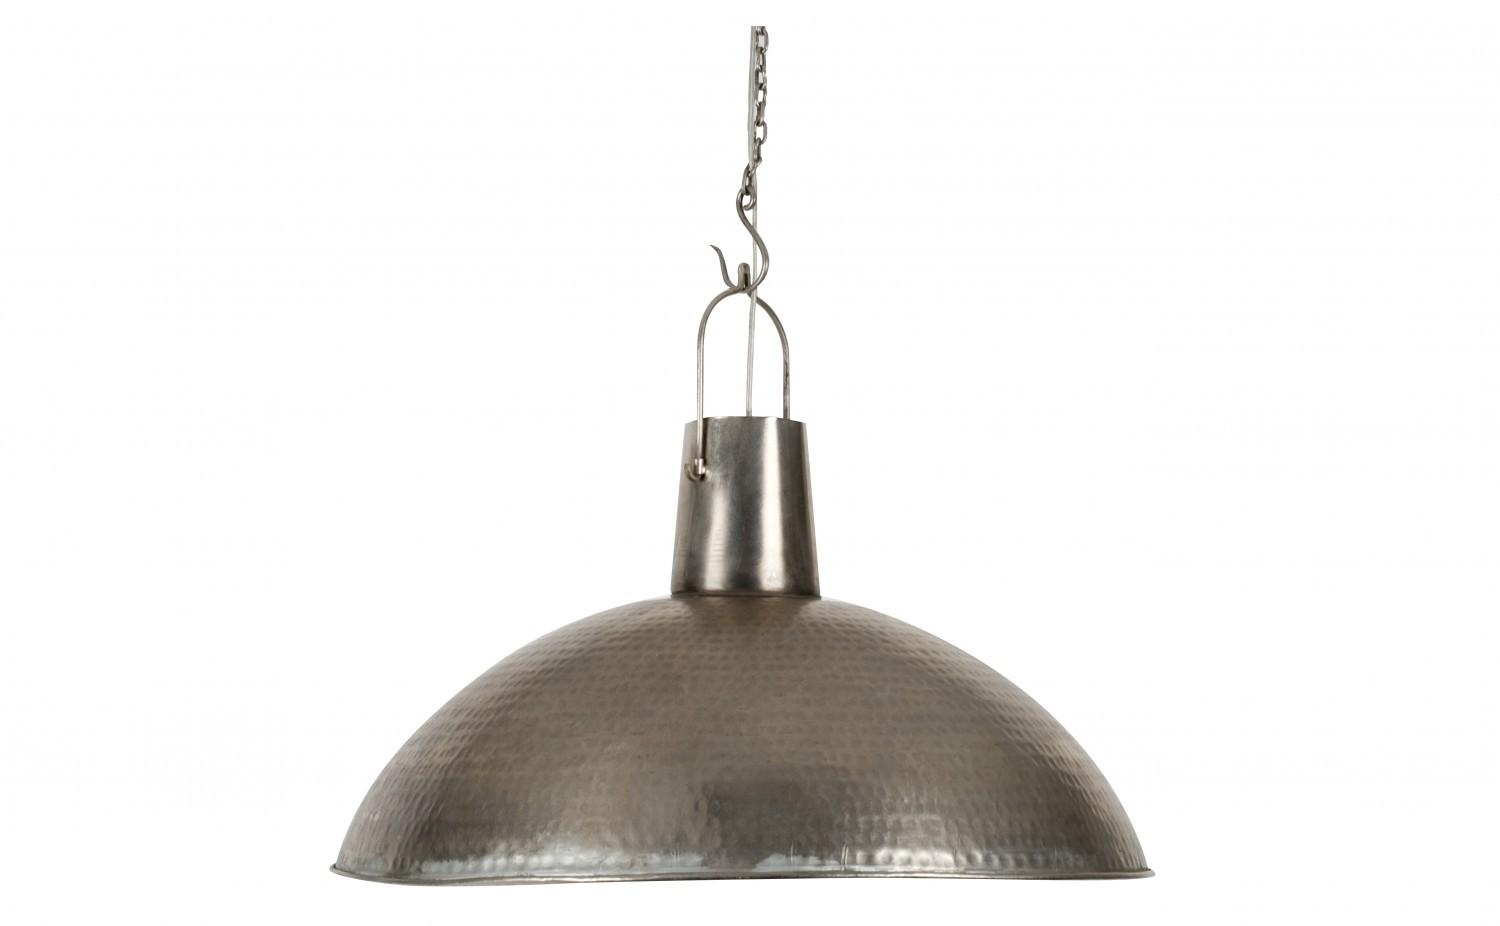 Archaic Design Hanging Lamps Ideas Featuring Silver Color